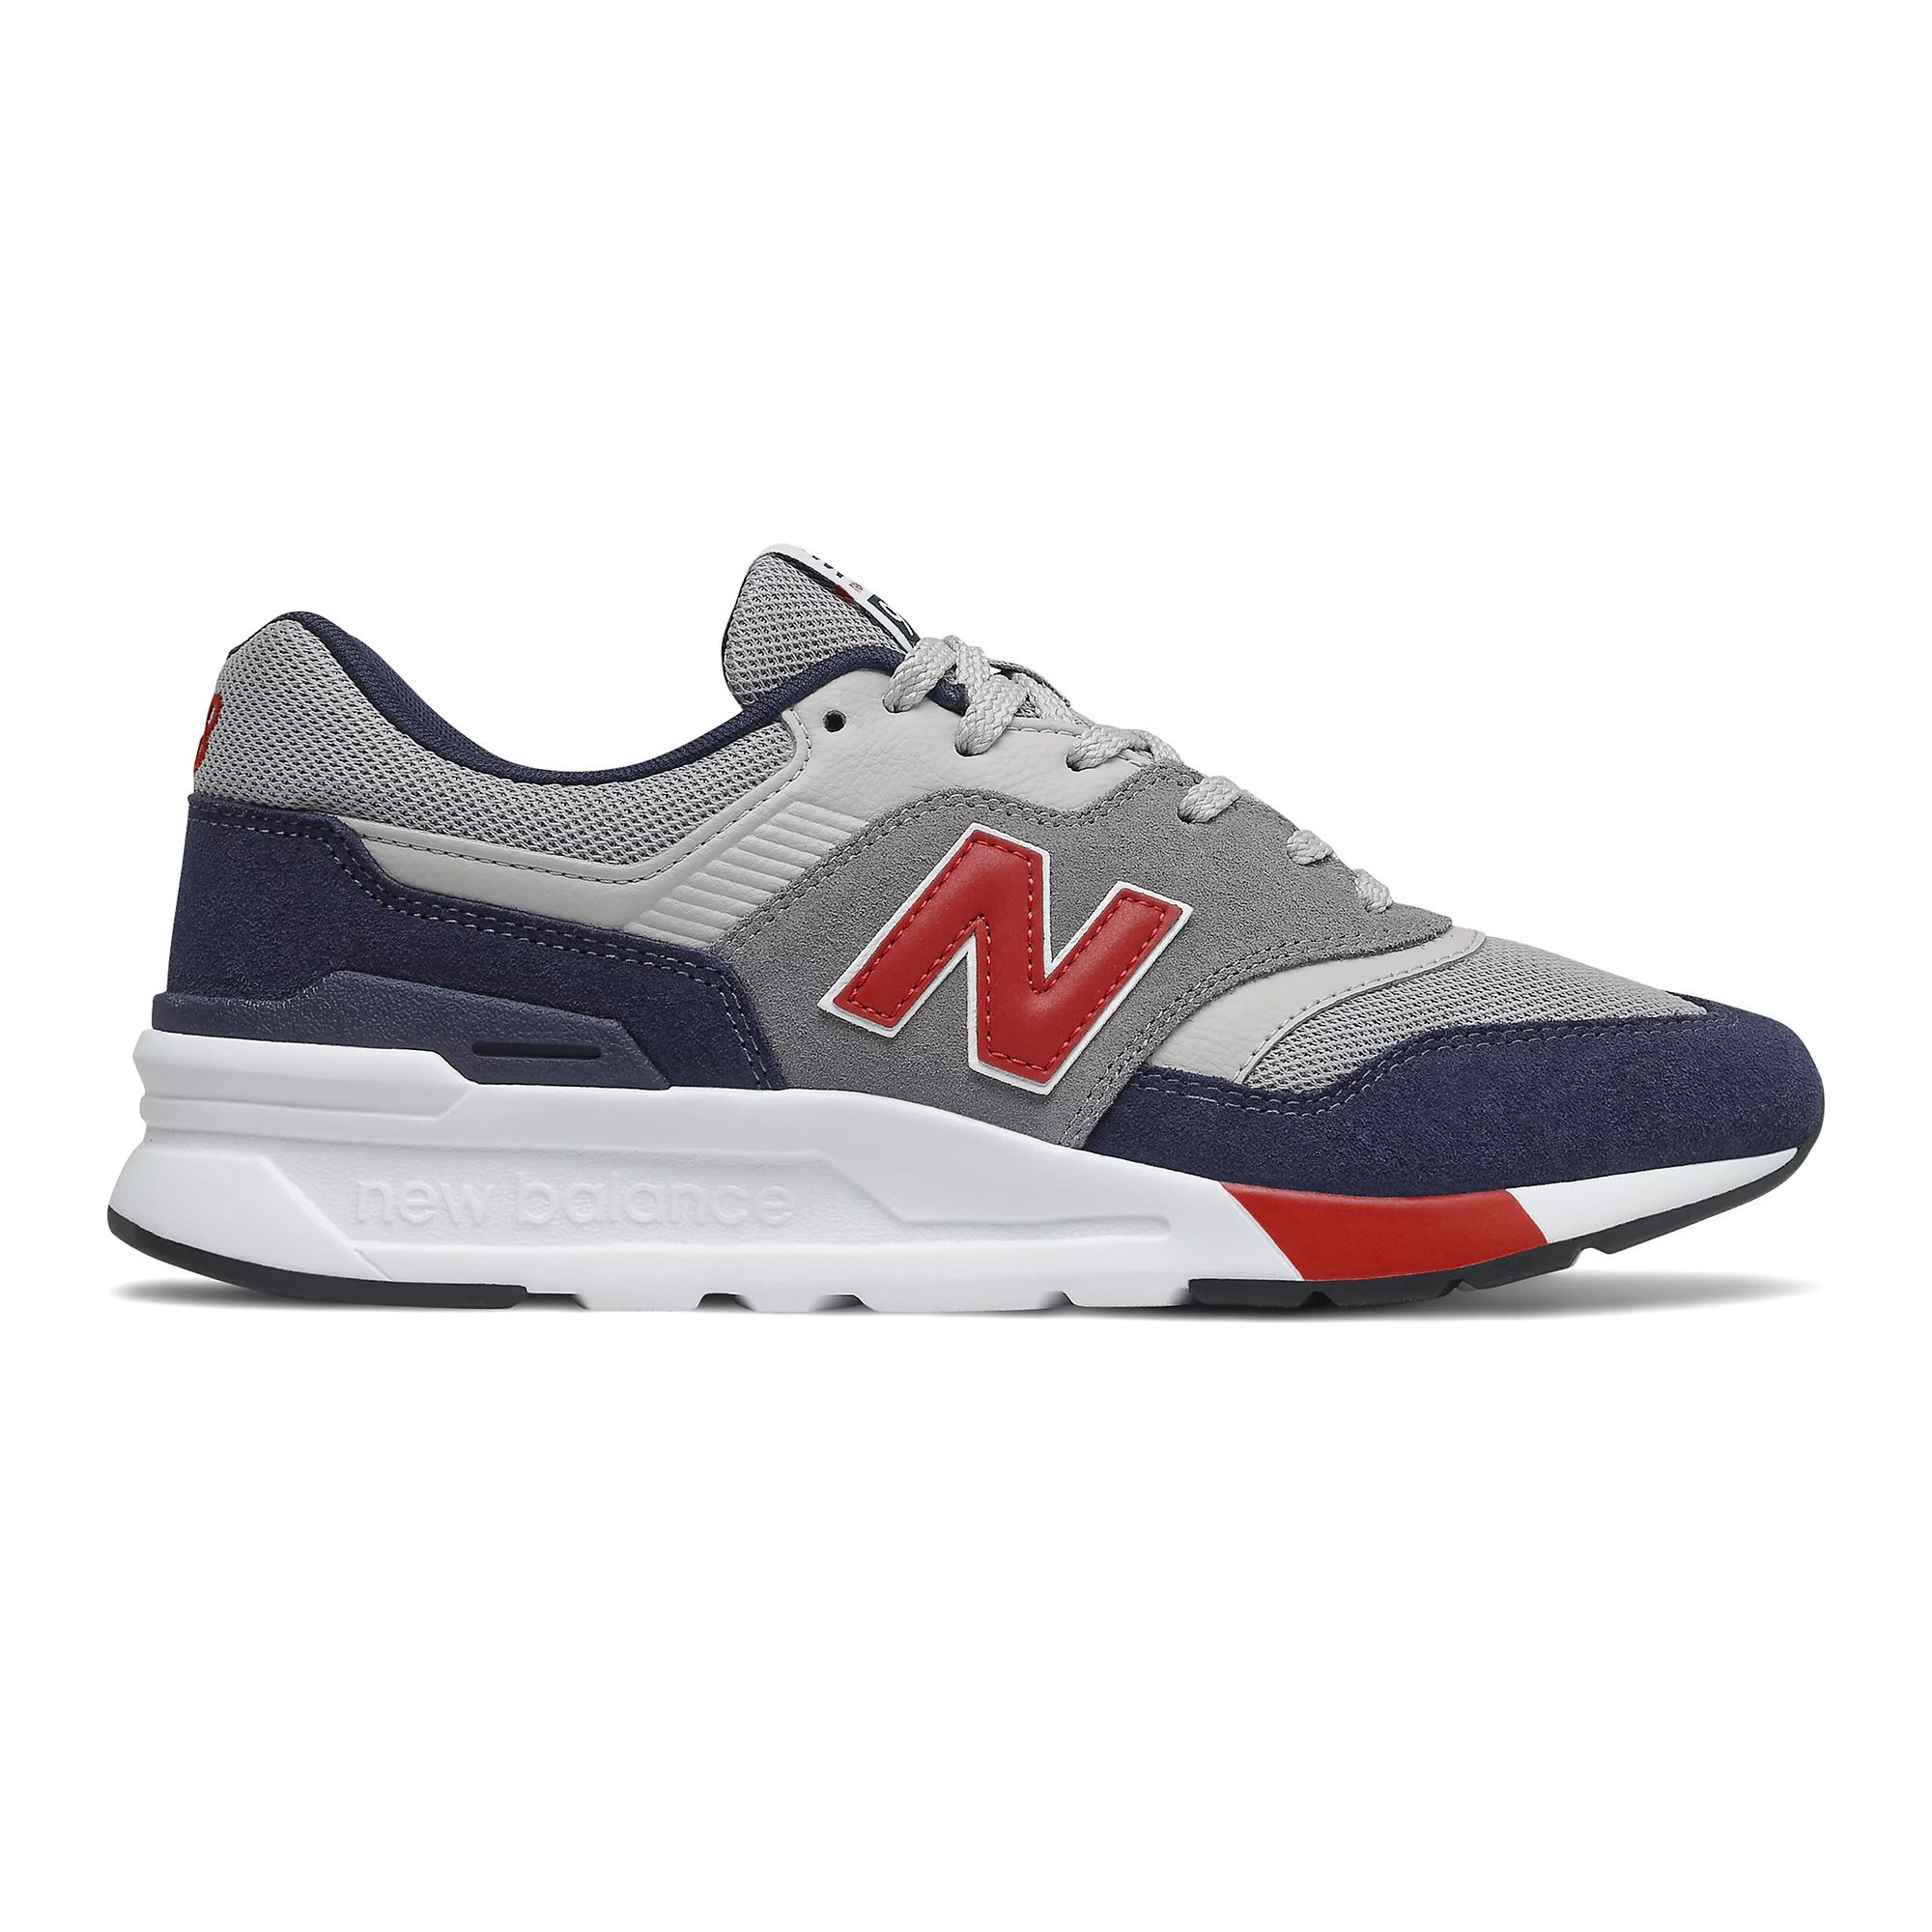 New Balance Men's 997H in Team Red/Pigment